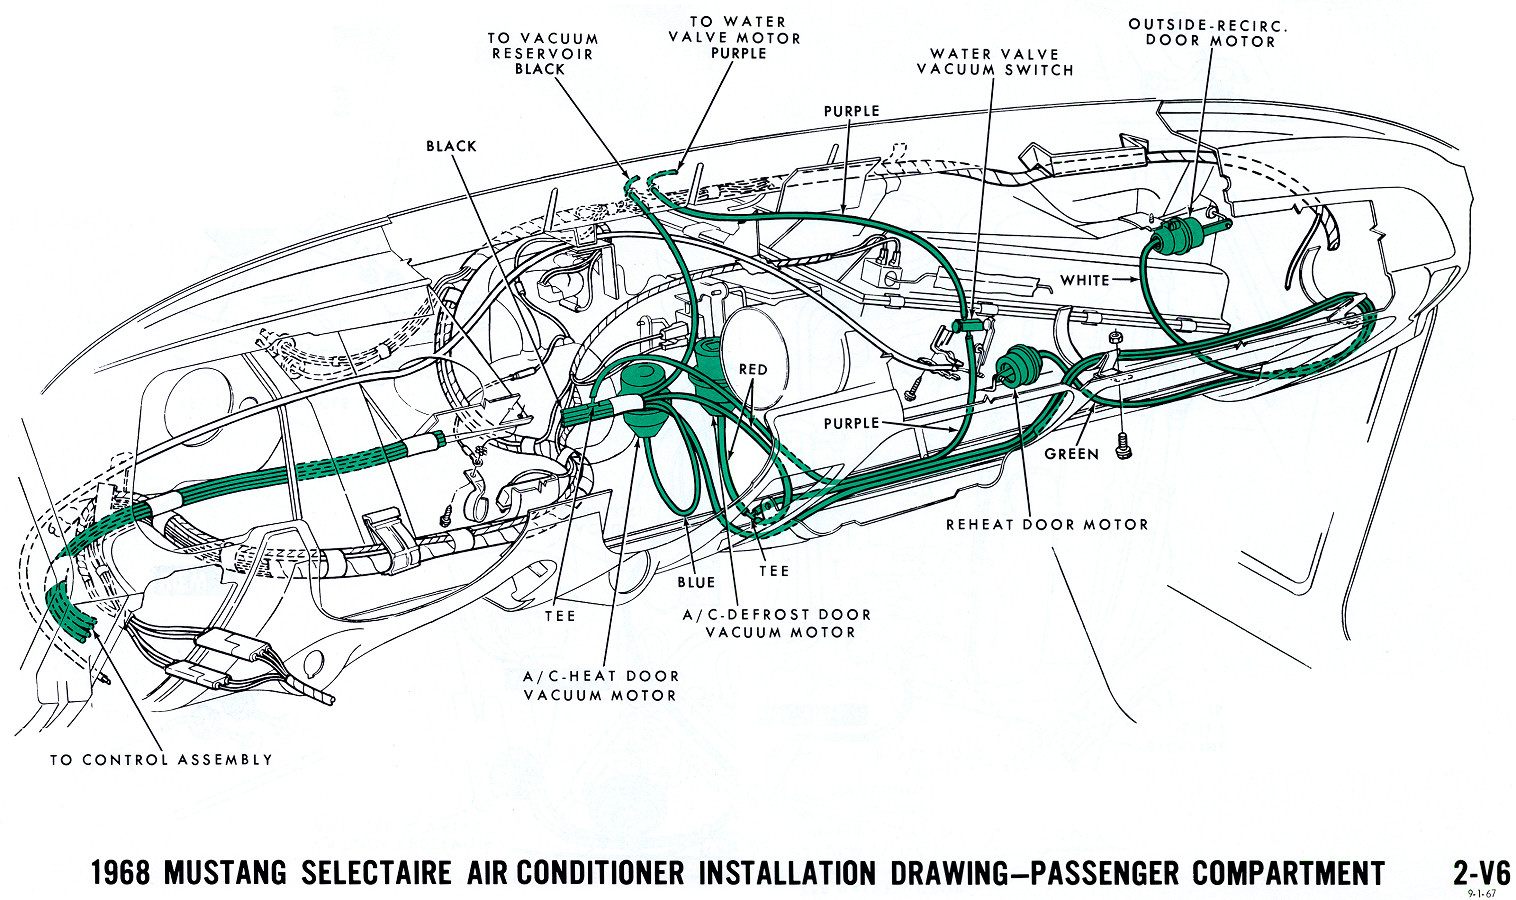 Wiring Diagram For 1969 Camaro Hideaway Lights Block 67 Engine Schematic 1968 Mustang Diagrams And Vacuum Schematics Average Joe Restoration 68 Starter